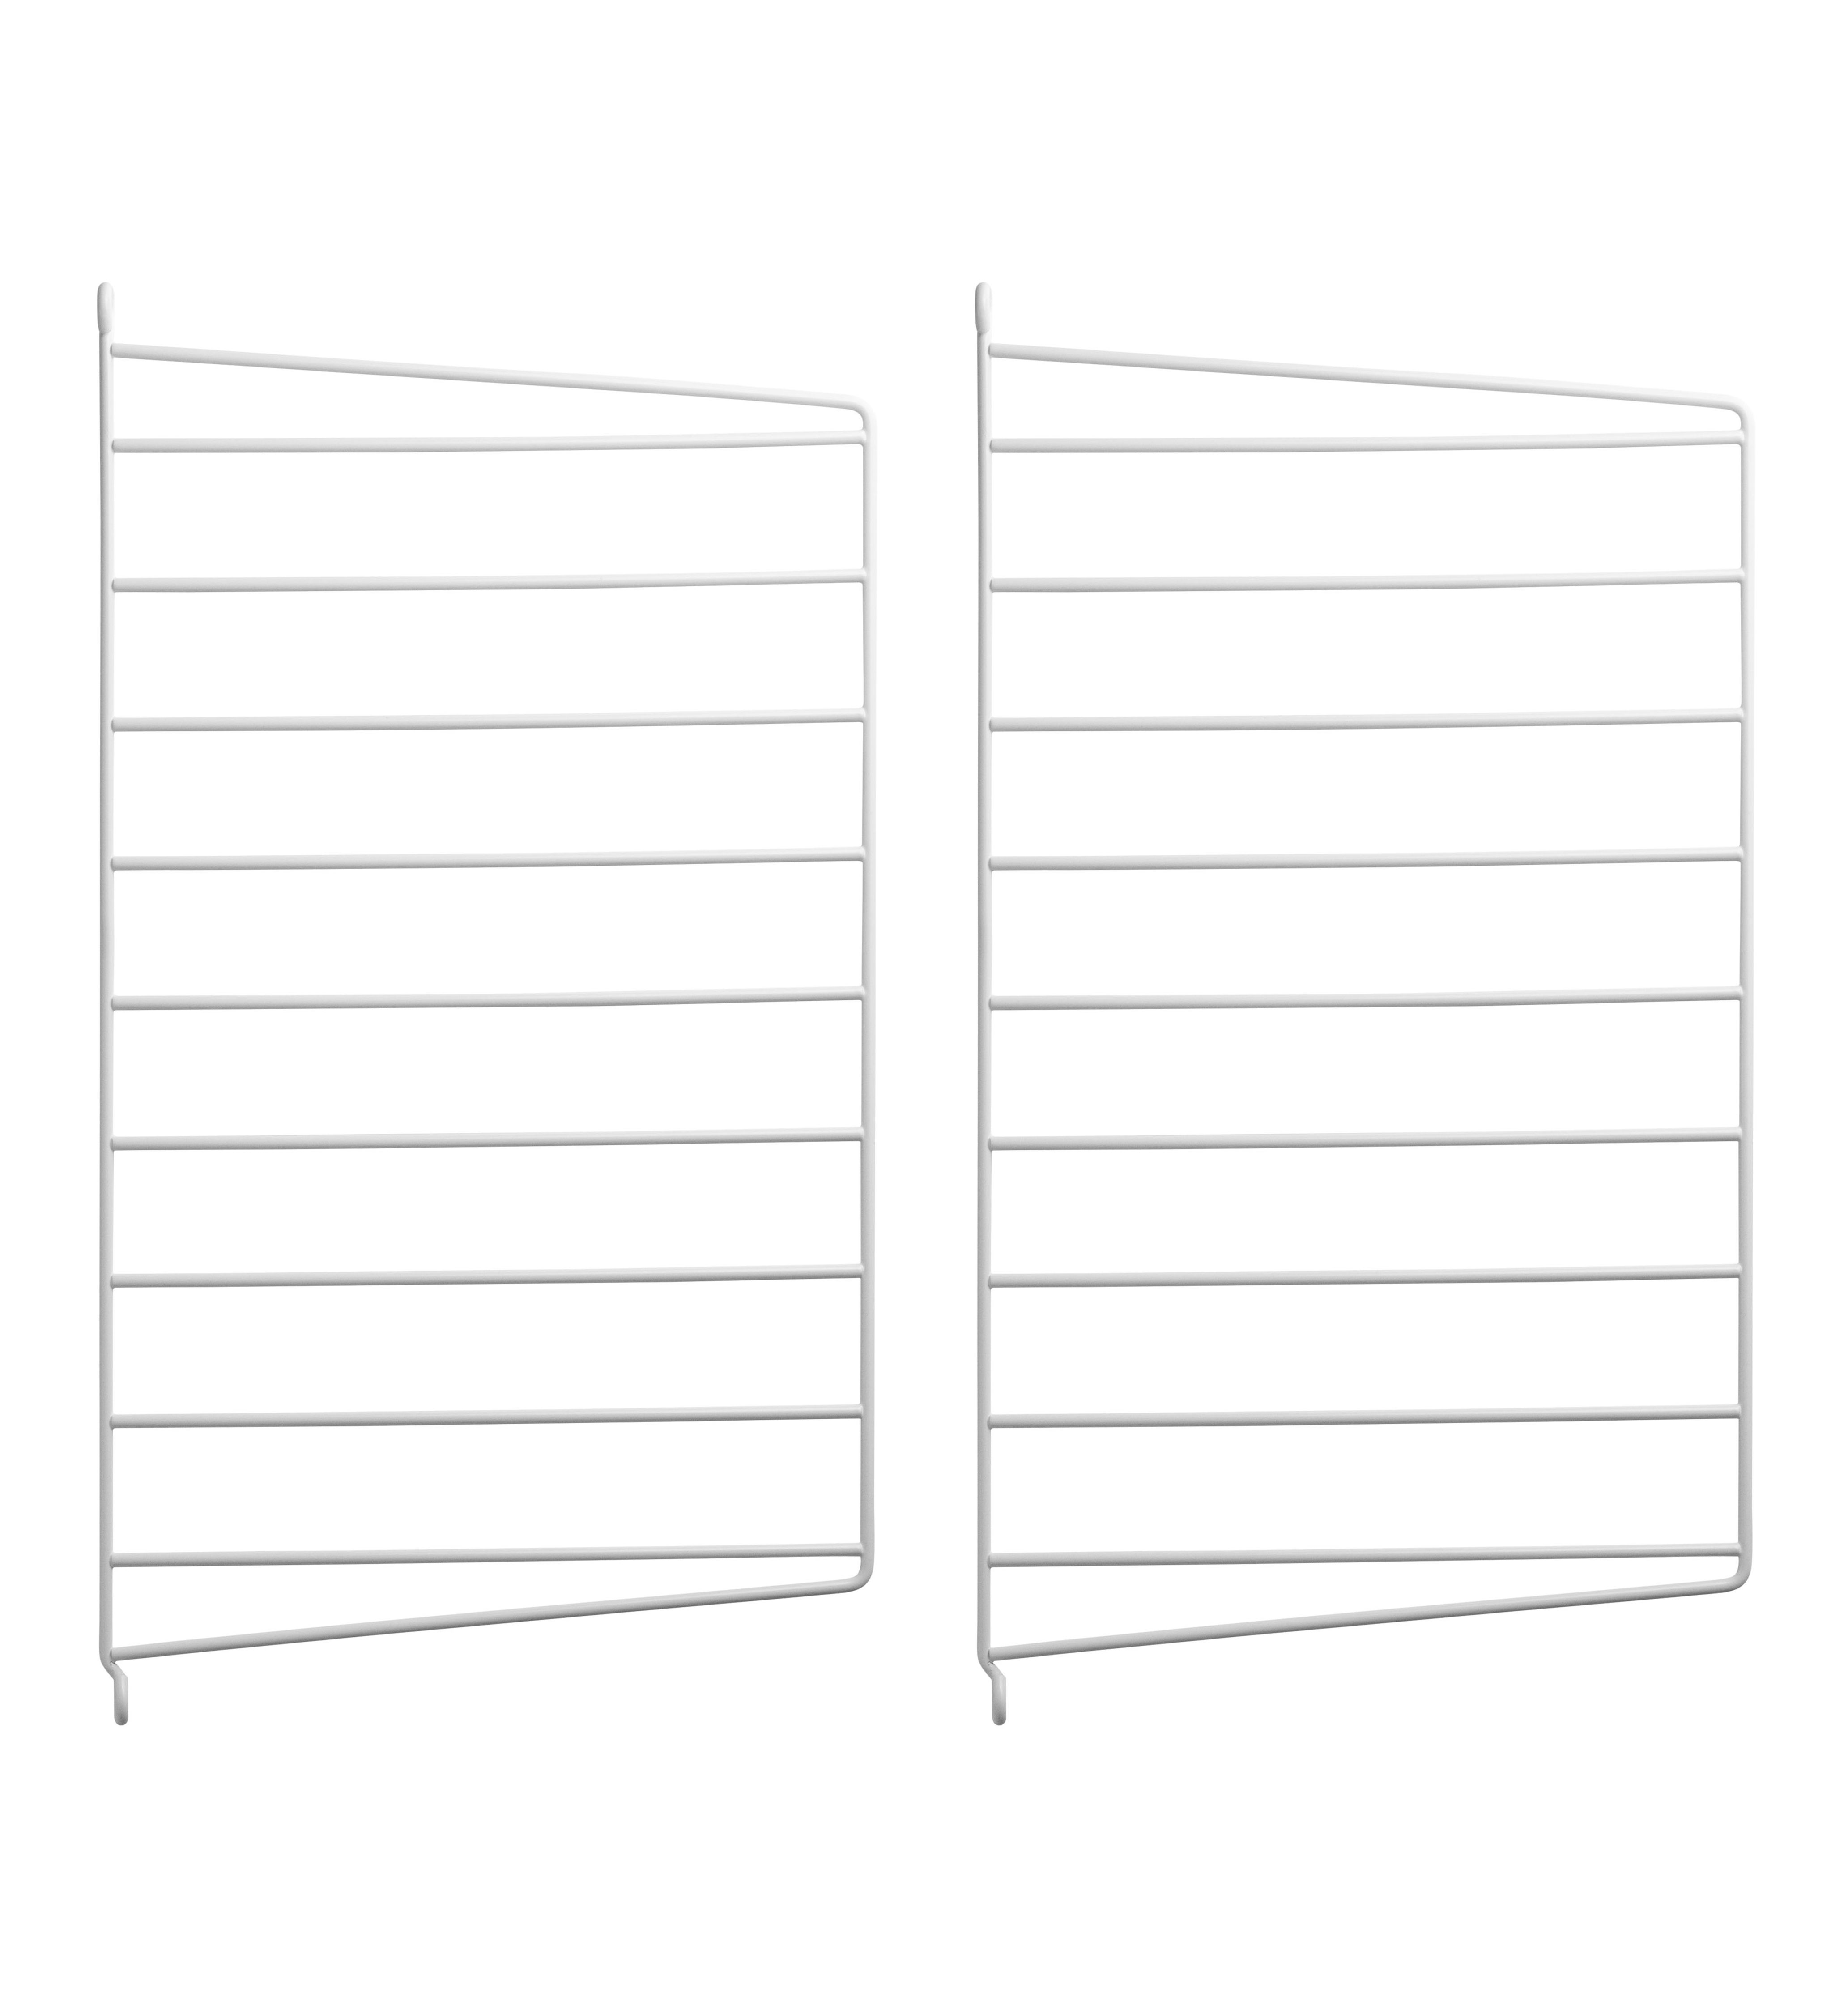 Furniture - Bookcases & Bookshelves - String system Wall mount - / H 50 x D 30 cm - Set of 2 by String Furniture - White - Lacquered metal